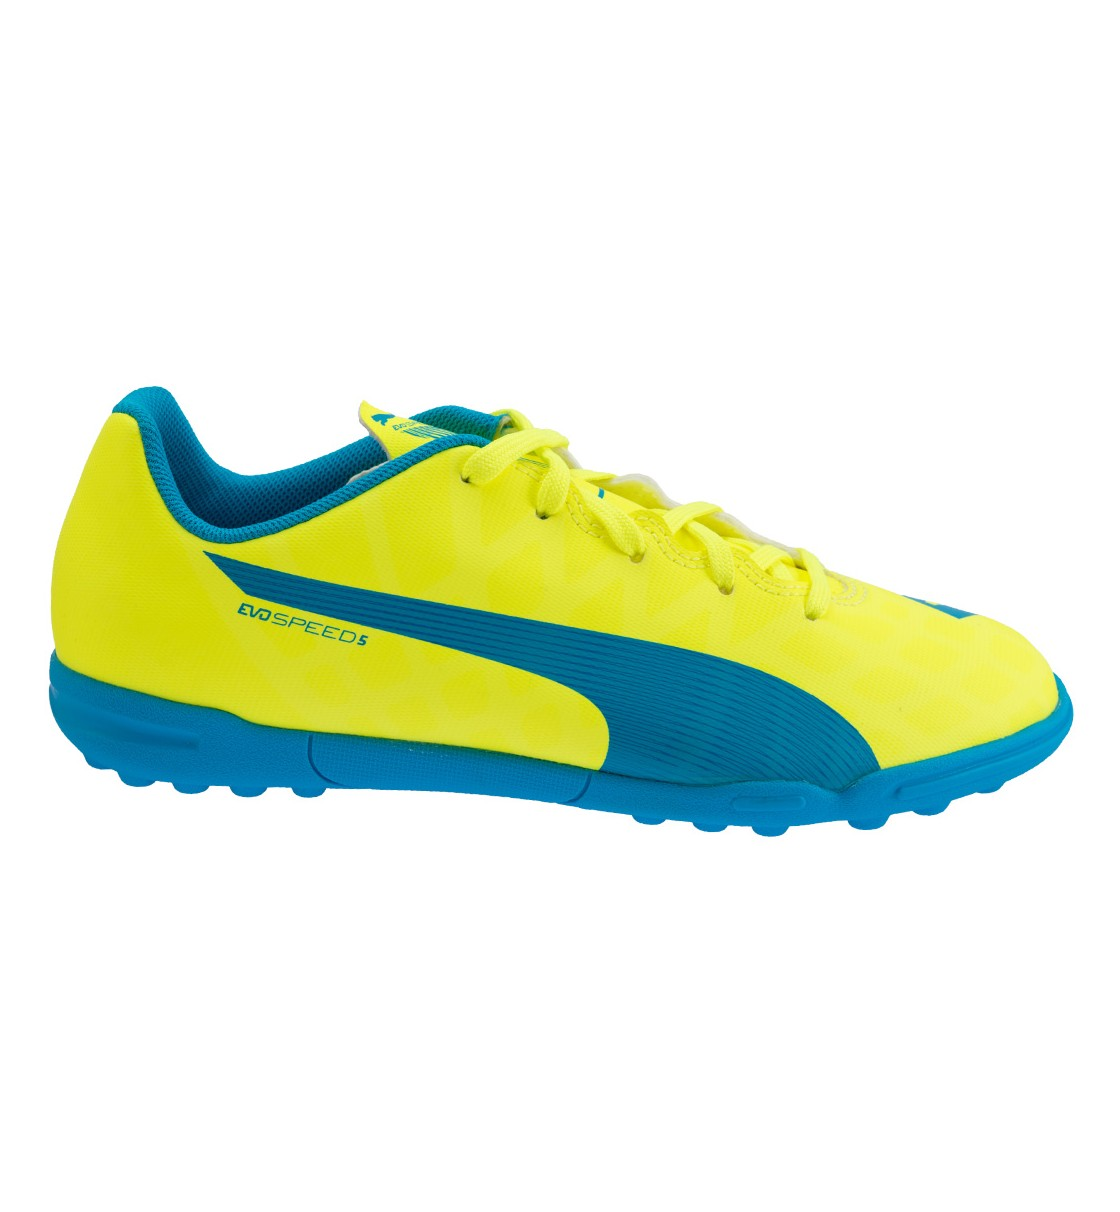 Puma evoSPEED 5.4 TT Jr ΥΠΟΔΗΜΑ